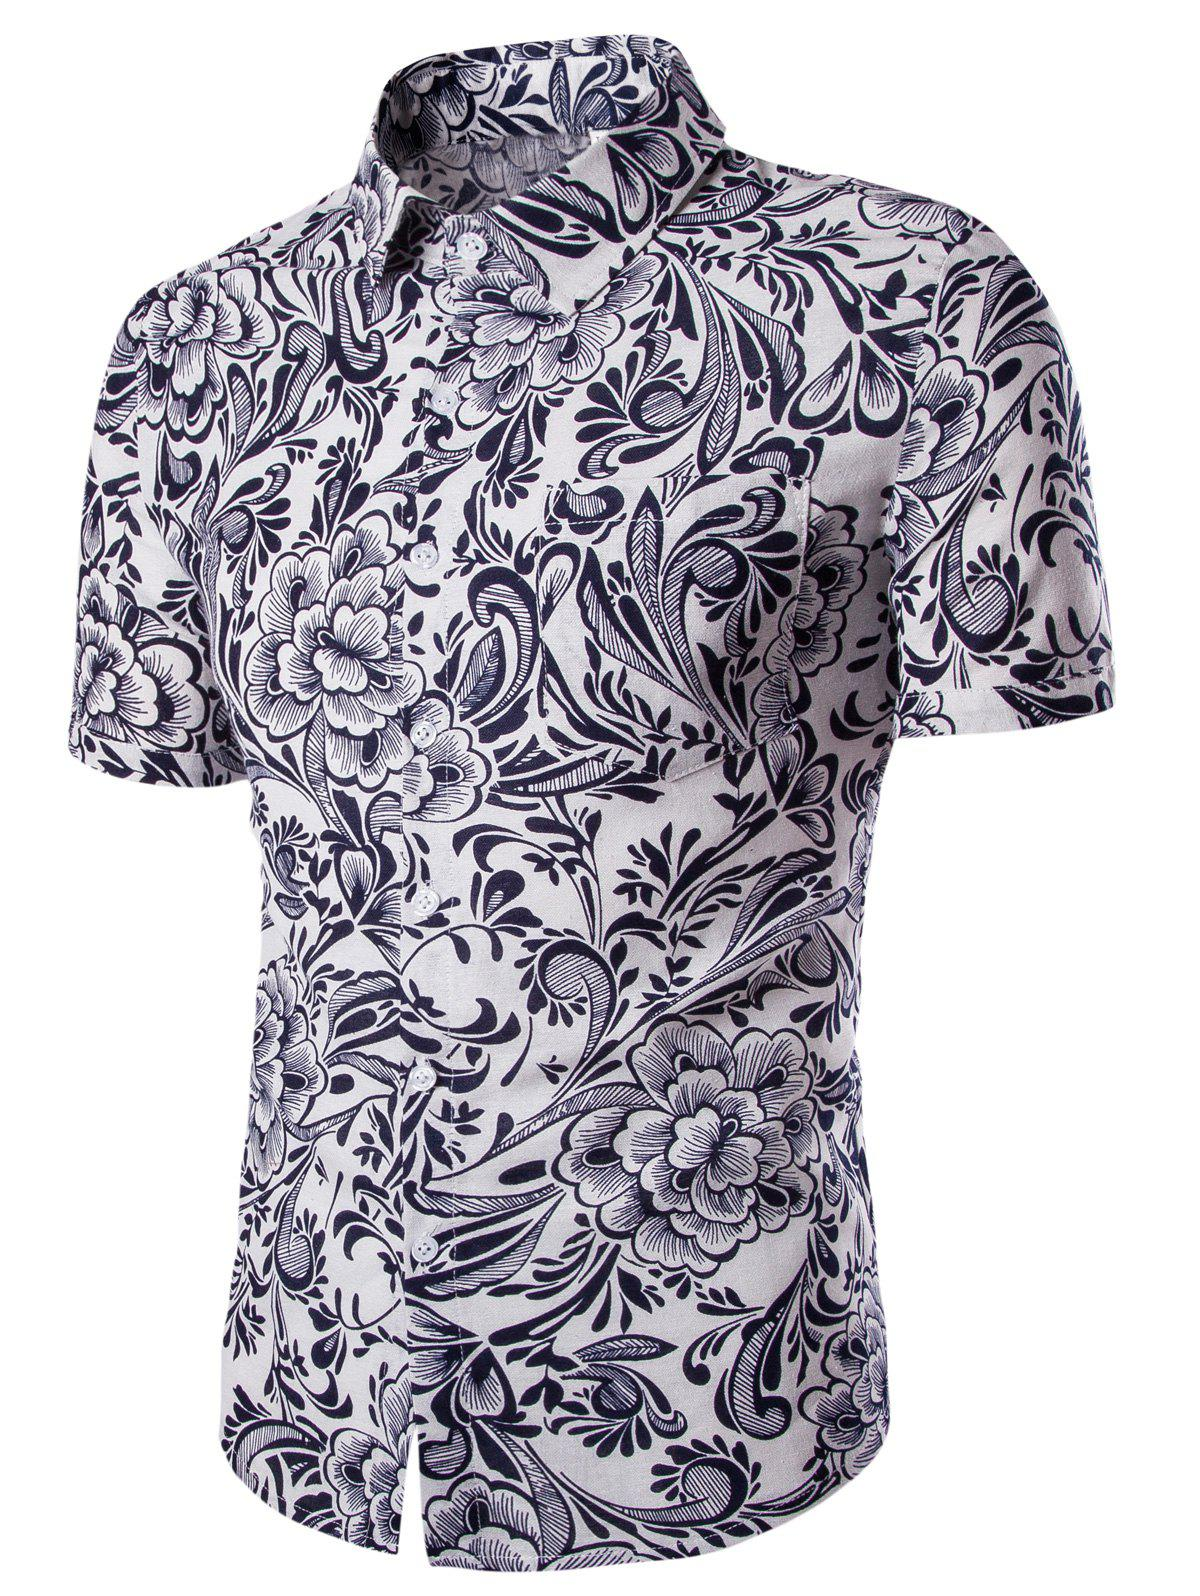 Casual Flower Printing Short Sleeves Men's Shirts